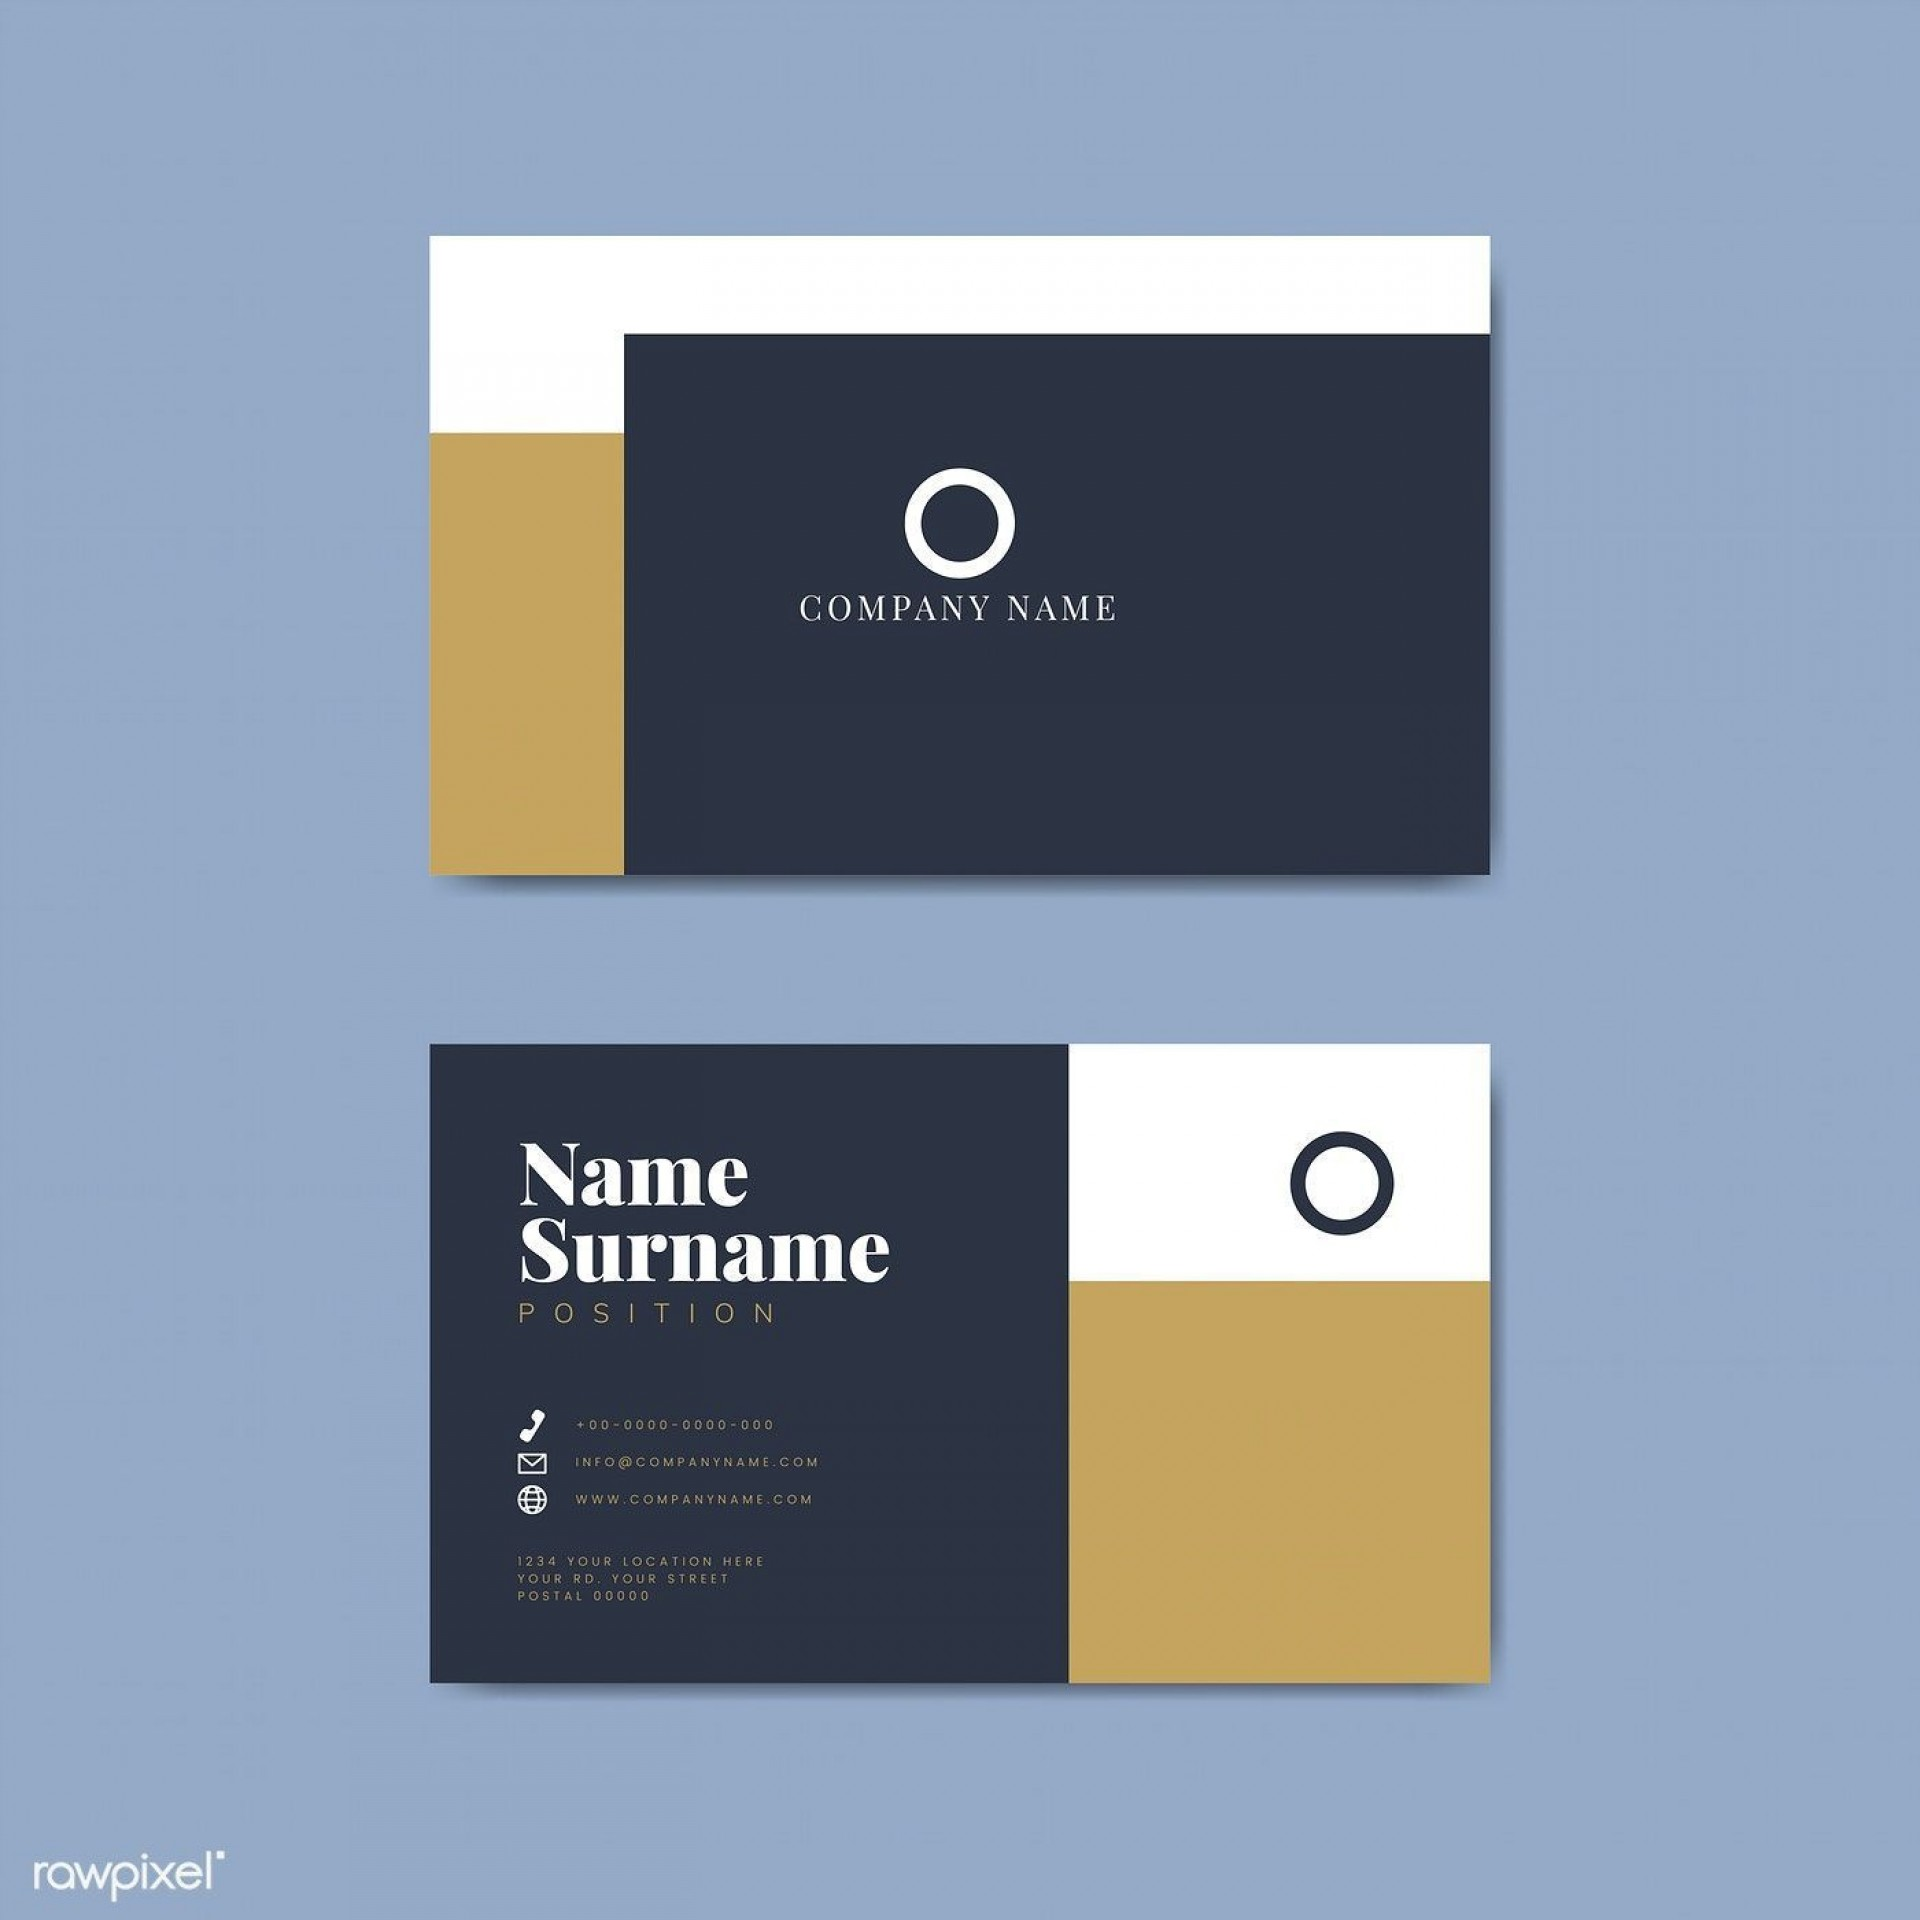 000 Outstanding Download Busines Card Template Example  Free For Illustrator Visiting Layout Word 20101920